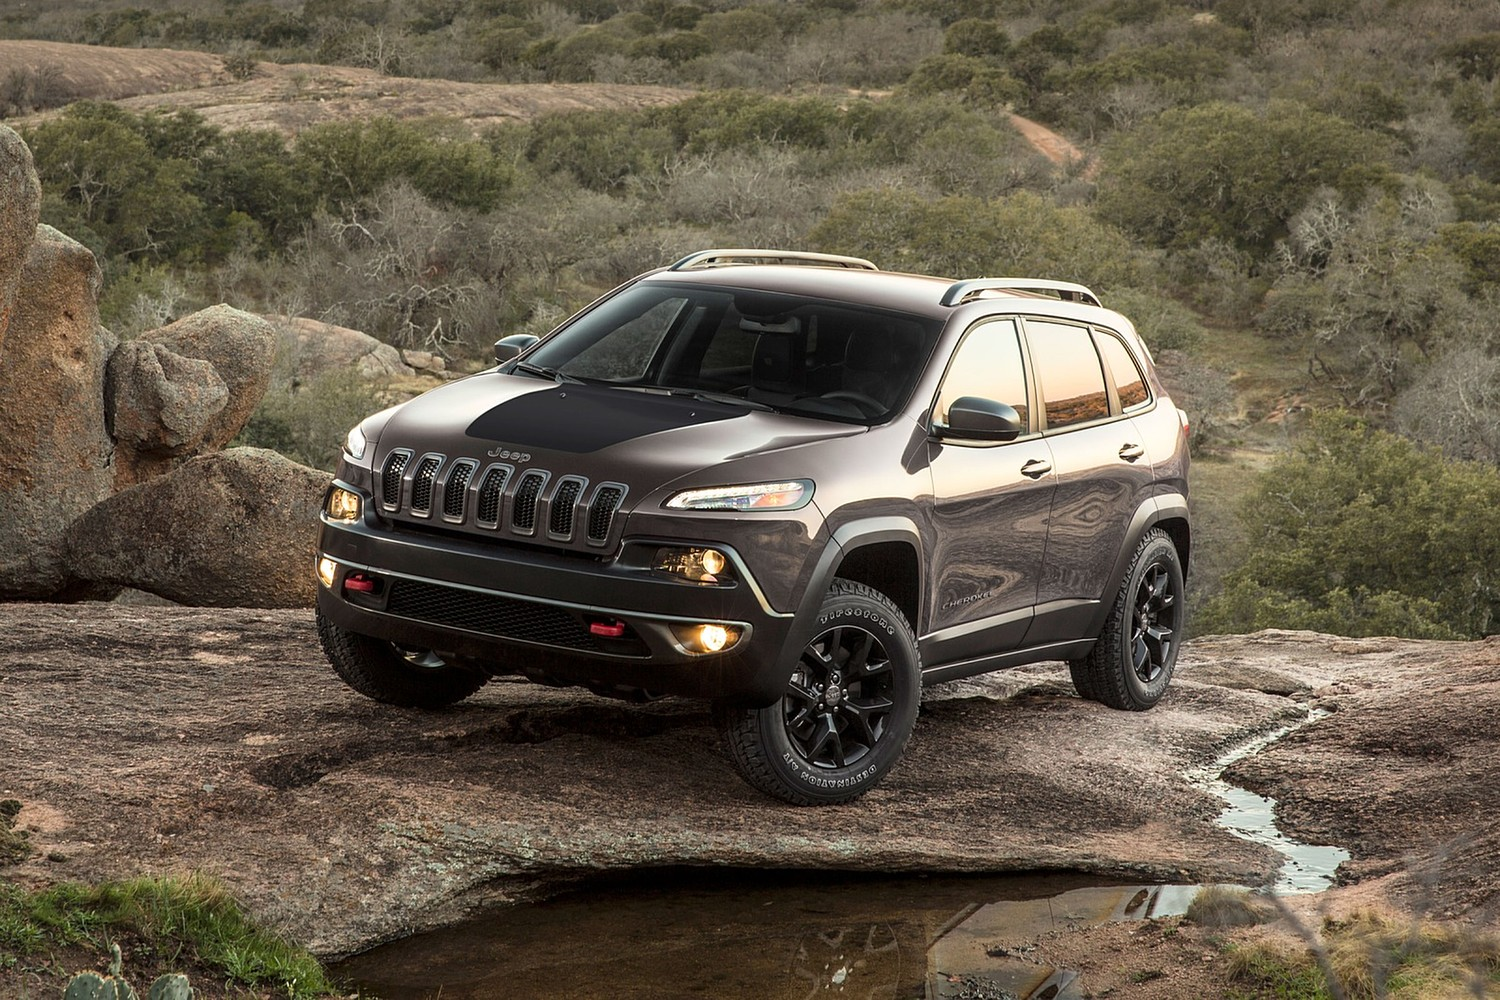 2018 Jeep Cherokee Trailhawk 4dr SUV Exterior